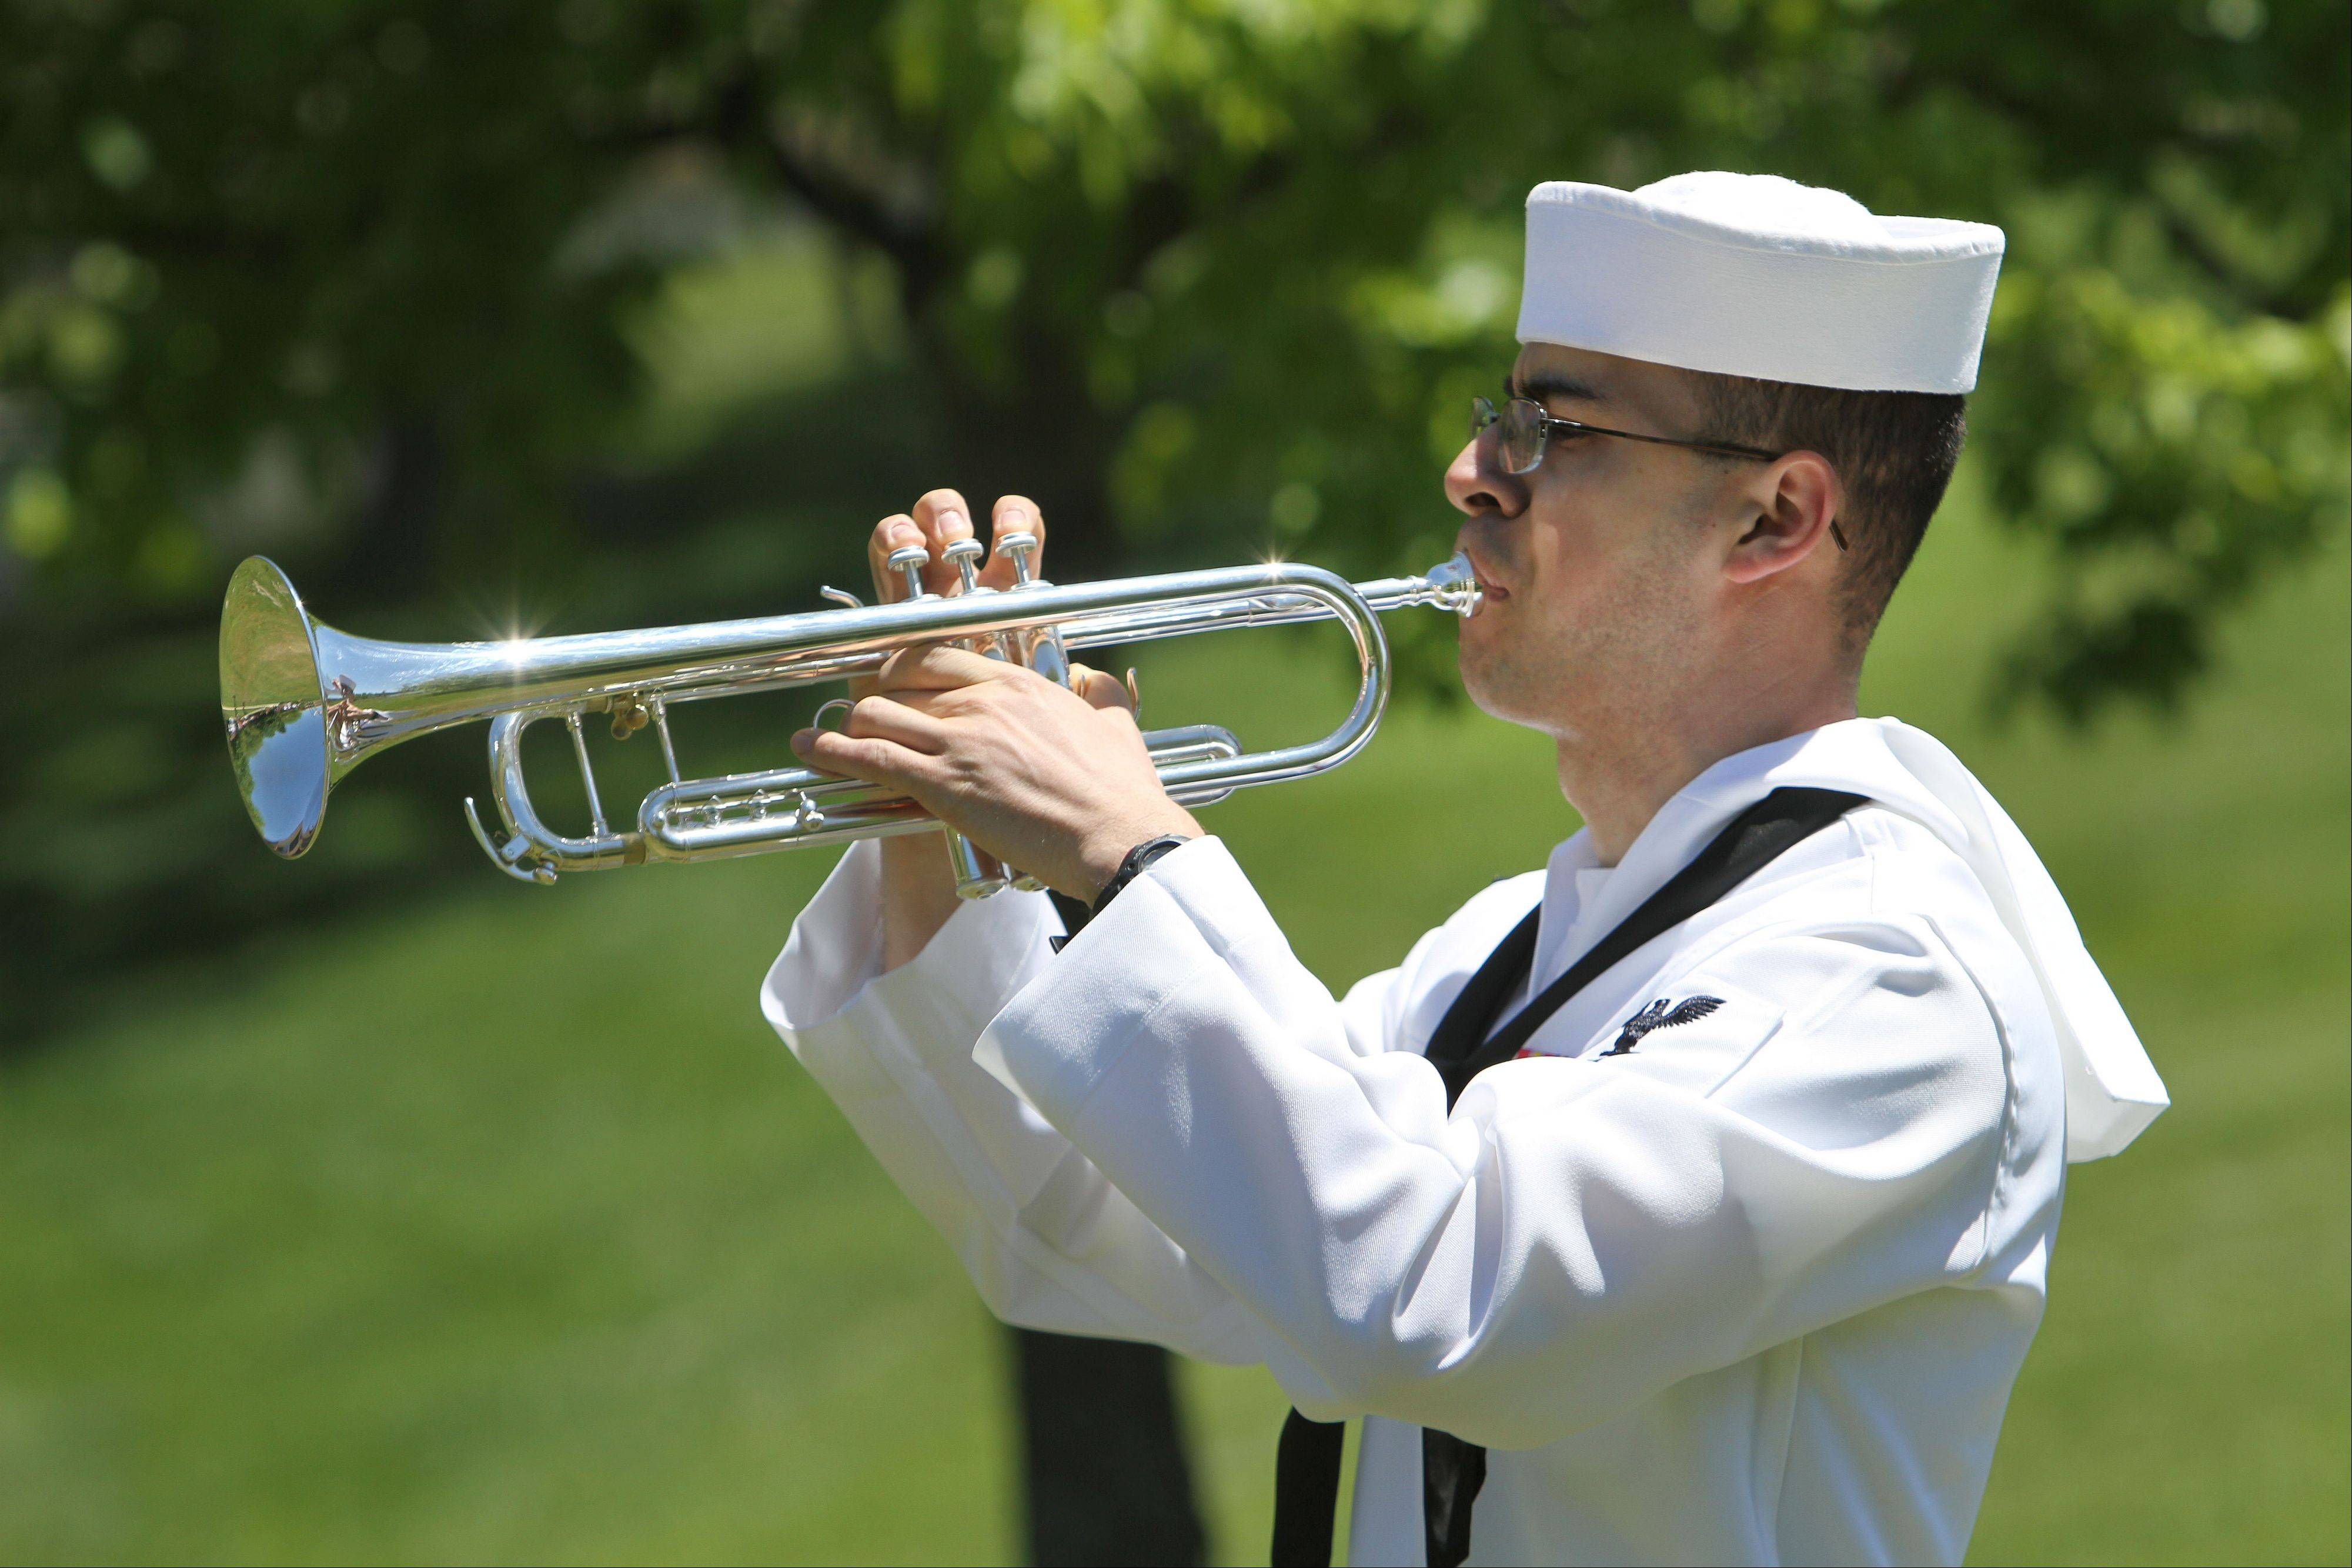 Navy Petty Officer Third Class Del Ross plays taps during the Memorial Day ceremony at the College of Lake County in Grayslake on Friday.